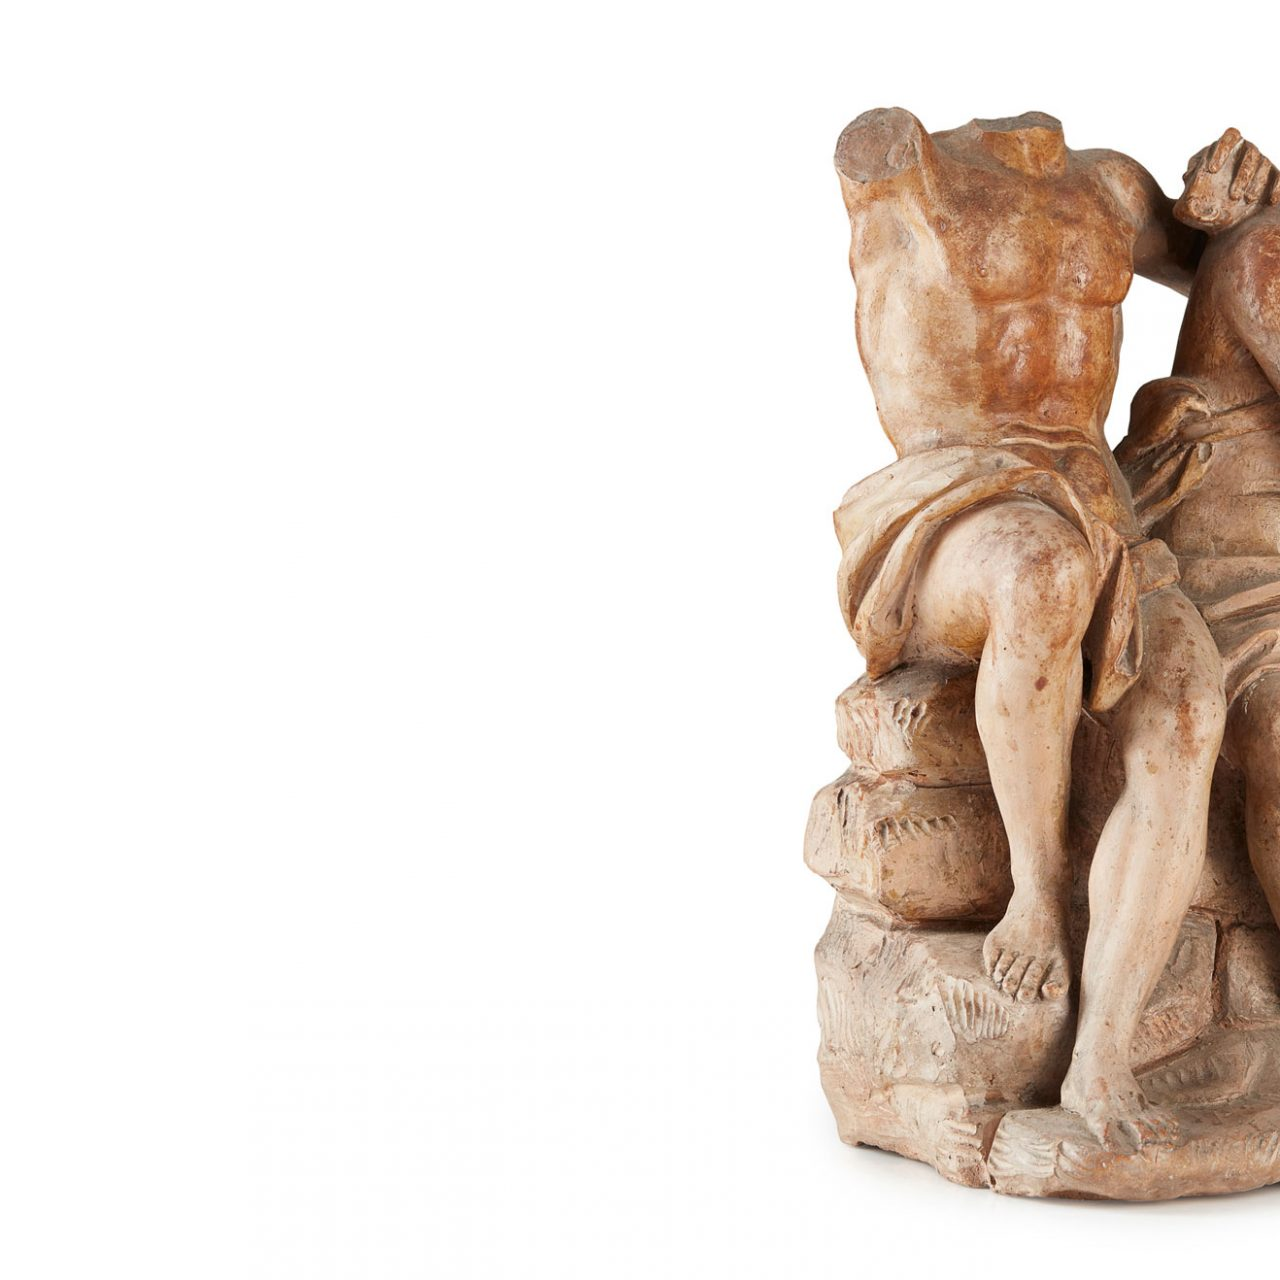 Piamontini Terracotta Highlighted at Balcarres House Auction